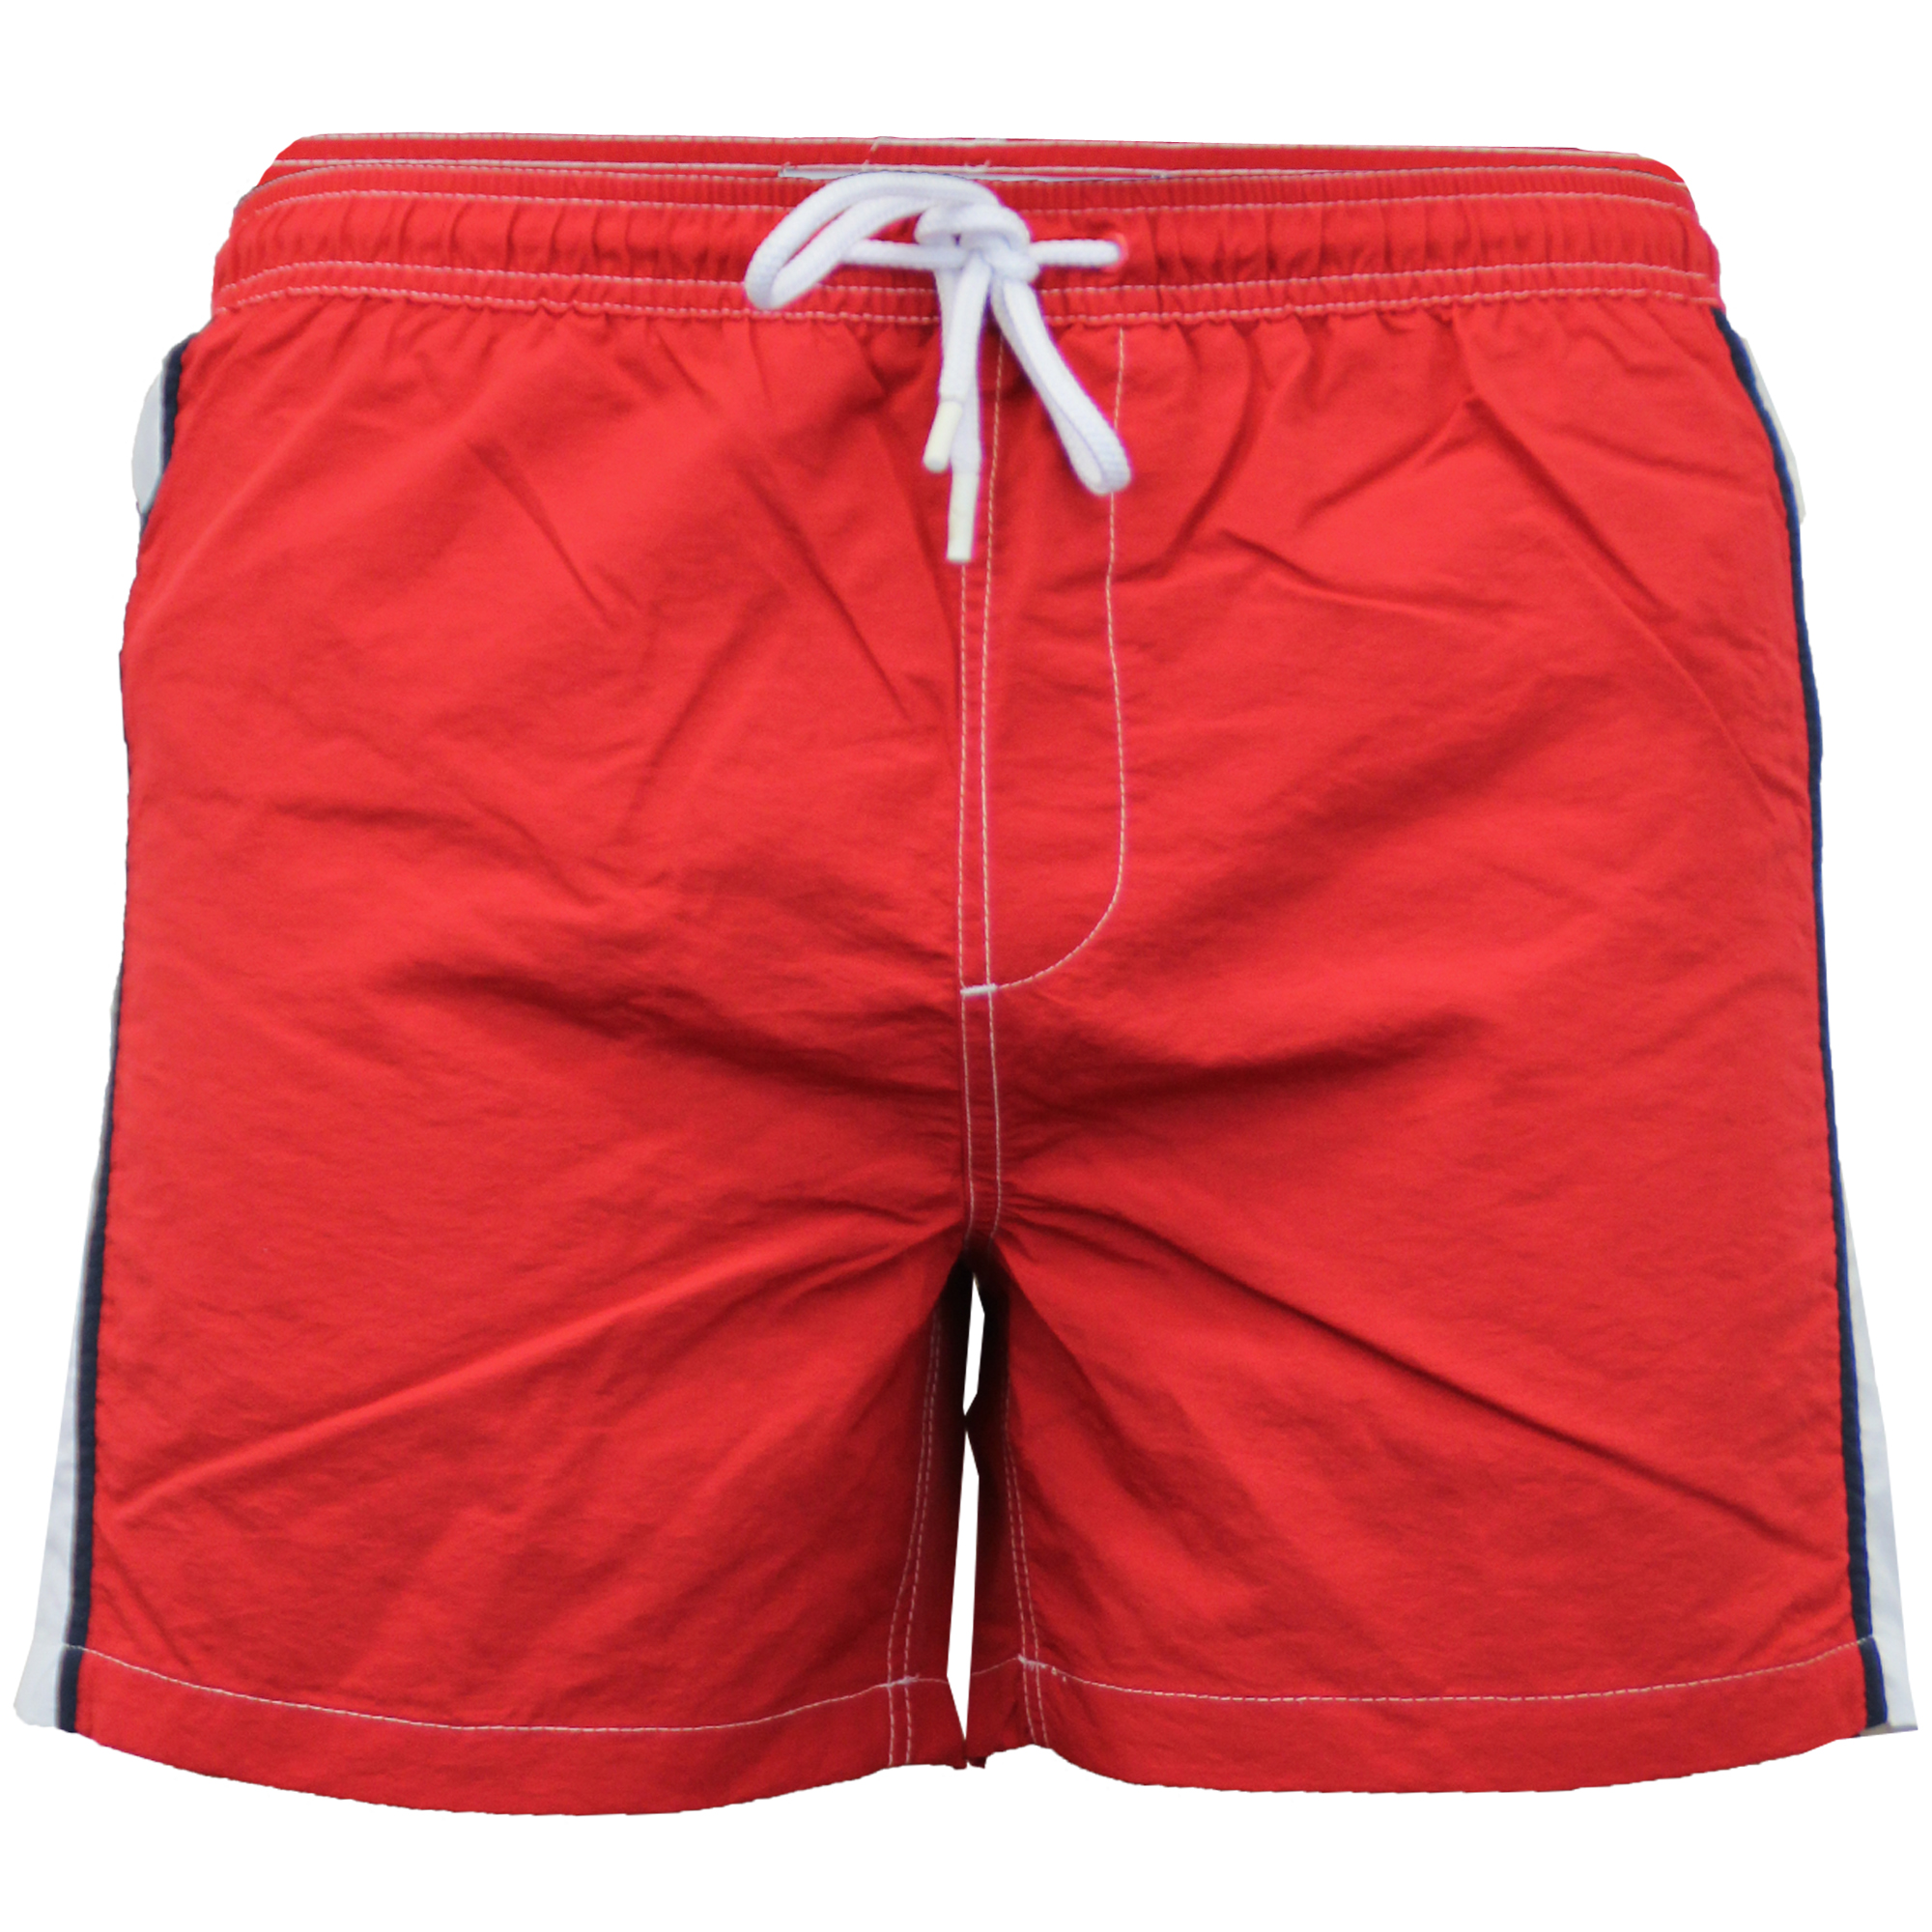 Mens-Swim-Board-Shorts-By-Brave-Soul-Mesh-Lined-New thumbnail 49